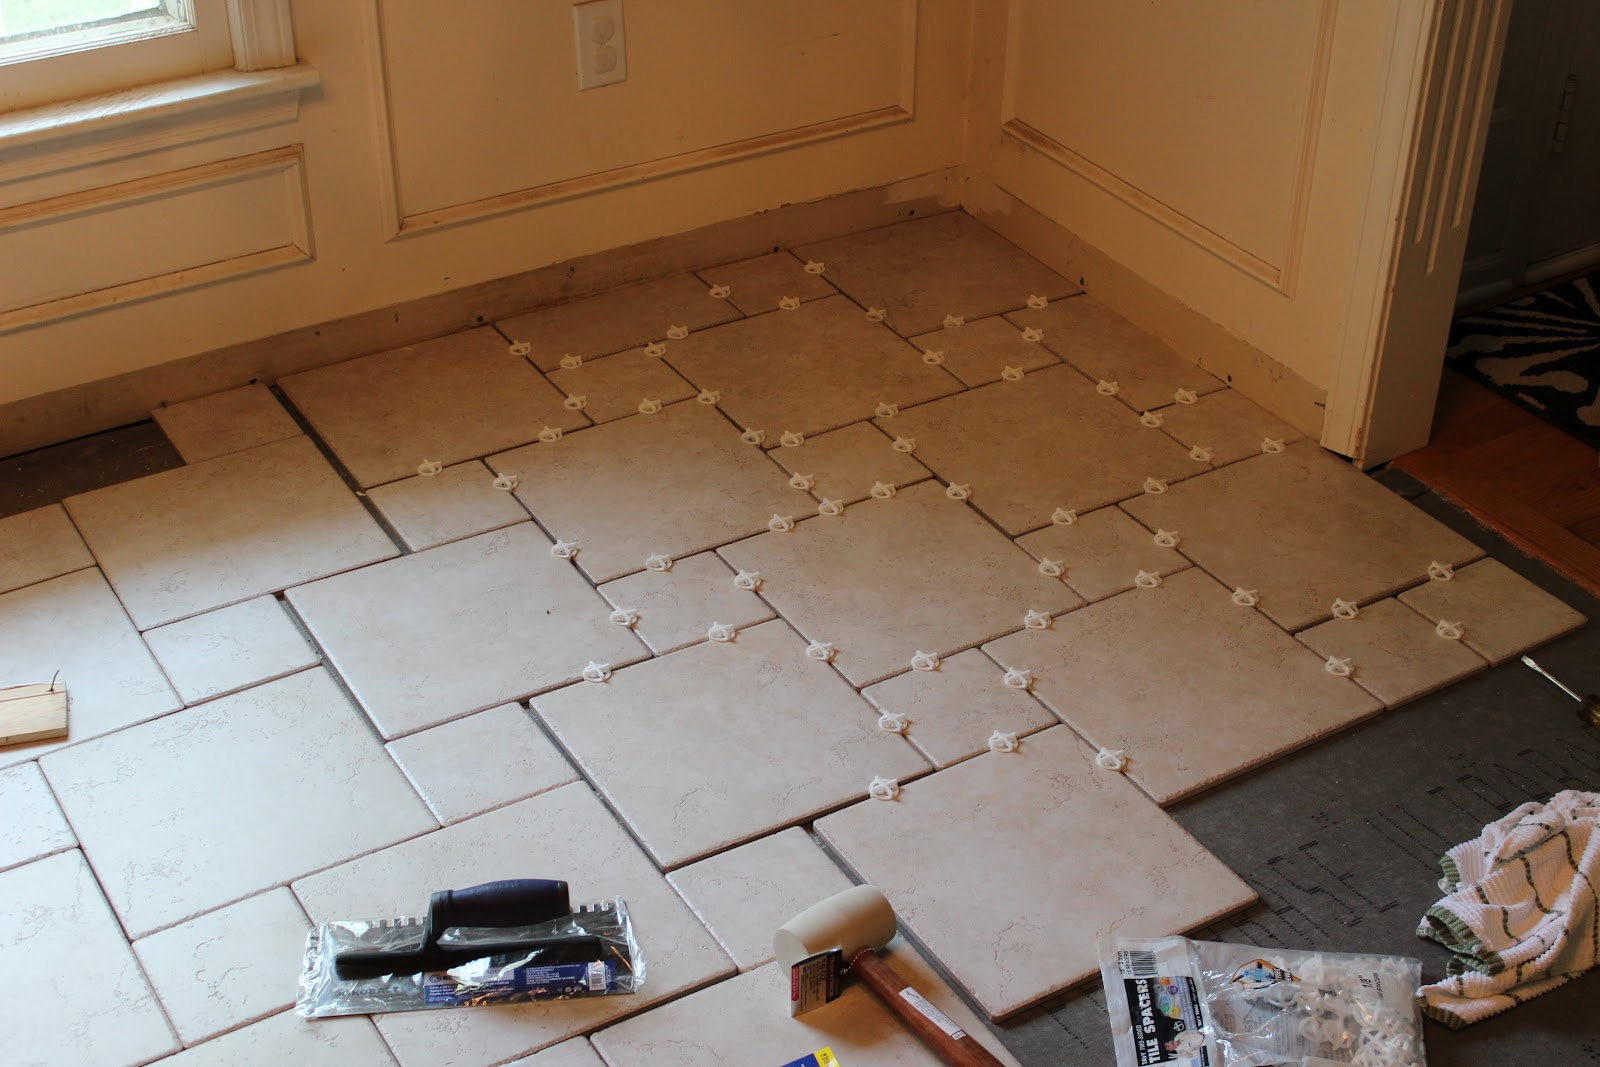 This homeowner thought he could lay floor tile. (He wound up hiring a professional.)